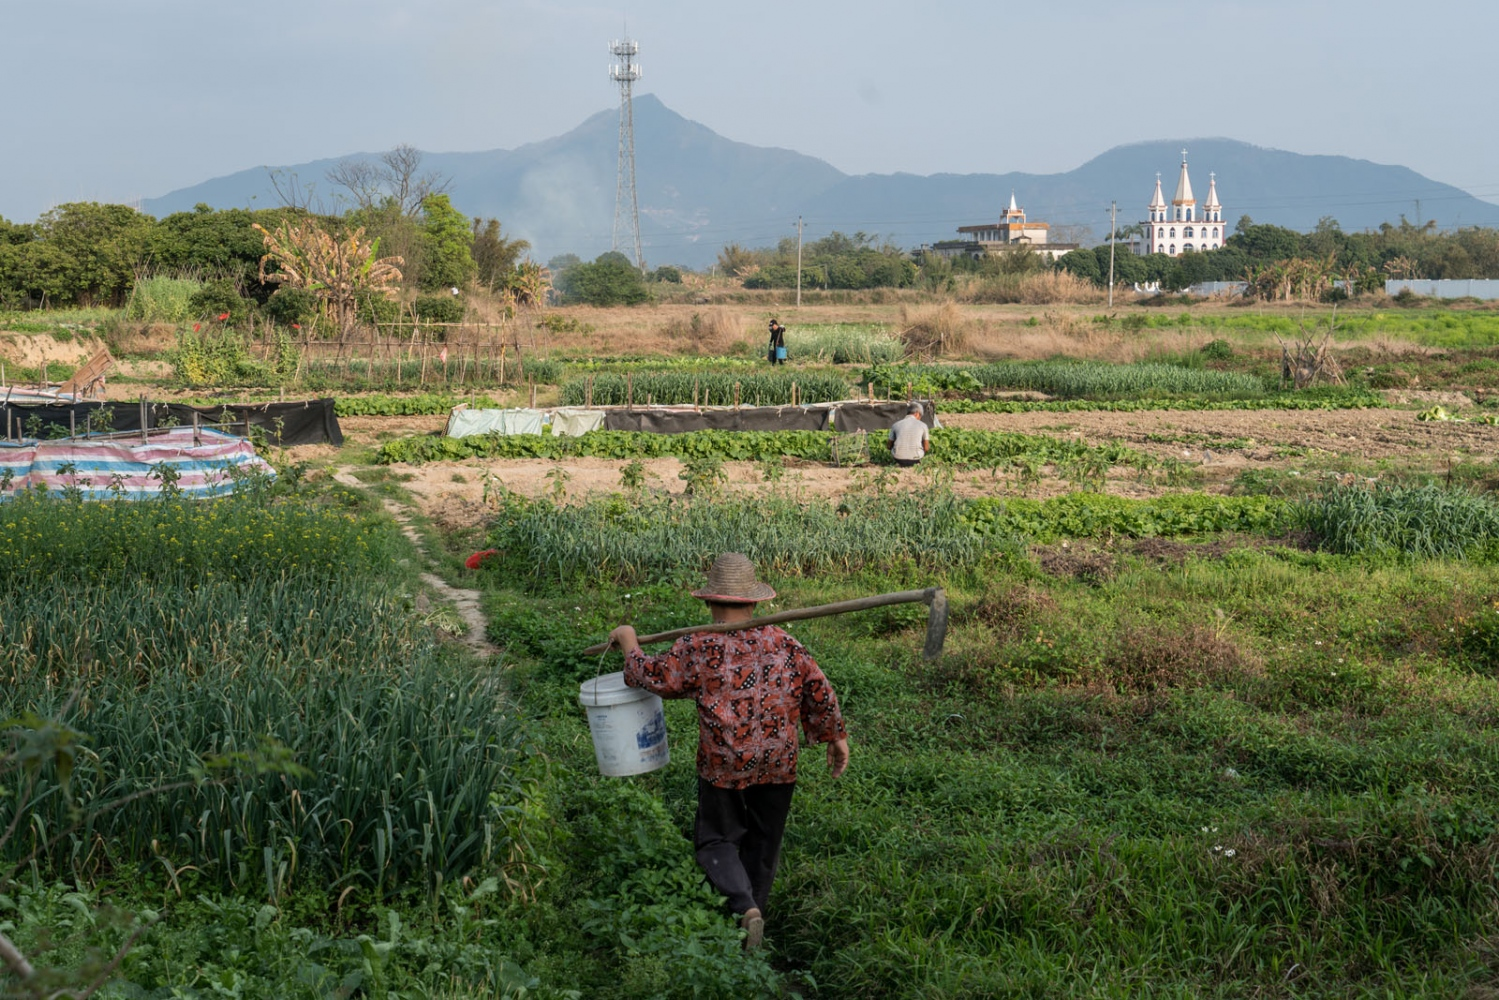 Villagers farm on their small piece of land in Guangdong province, China on March 3, 2018. Luotianba Catholic Church stands in the background.